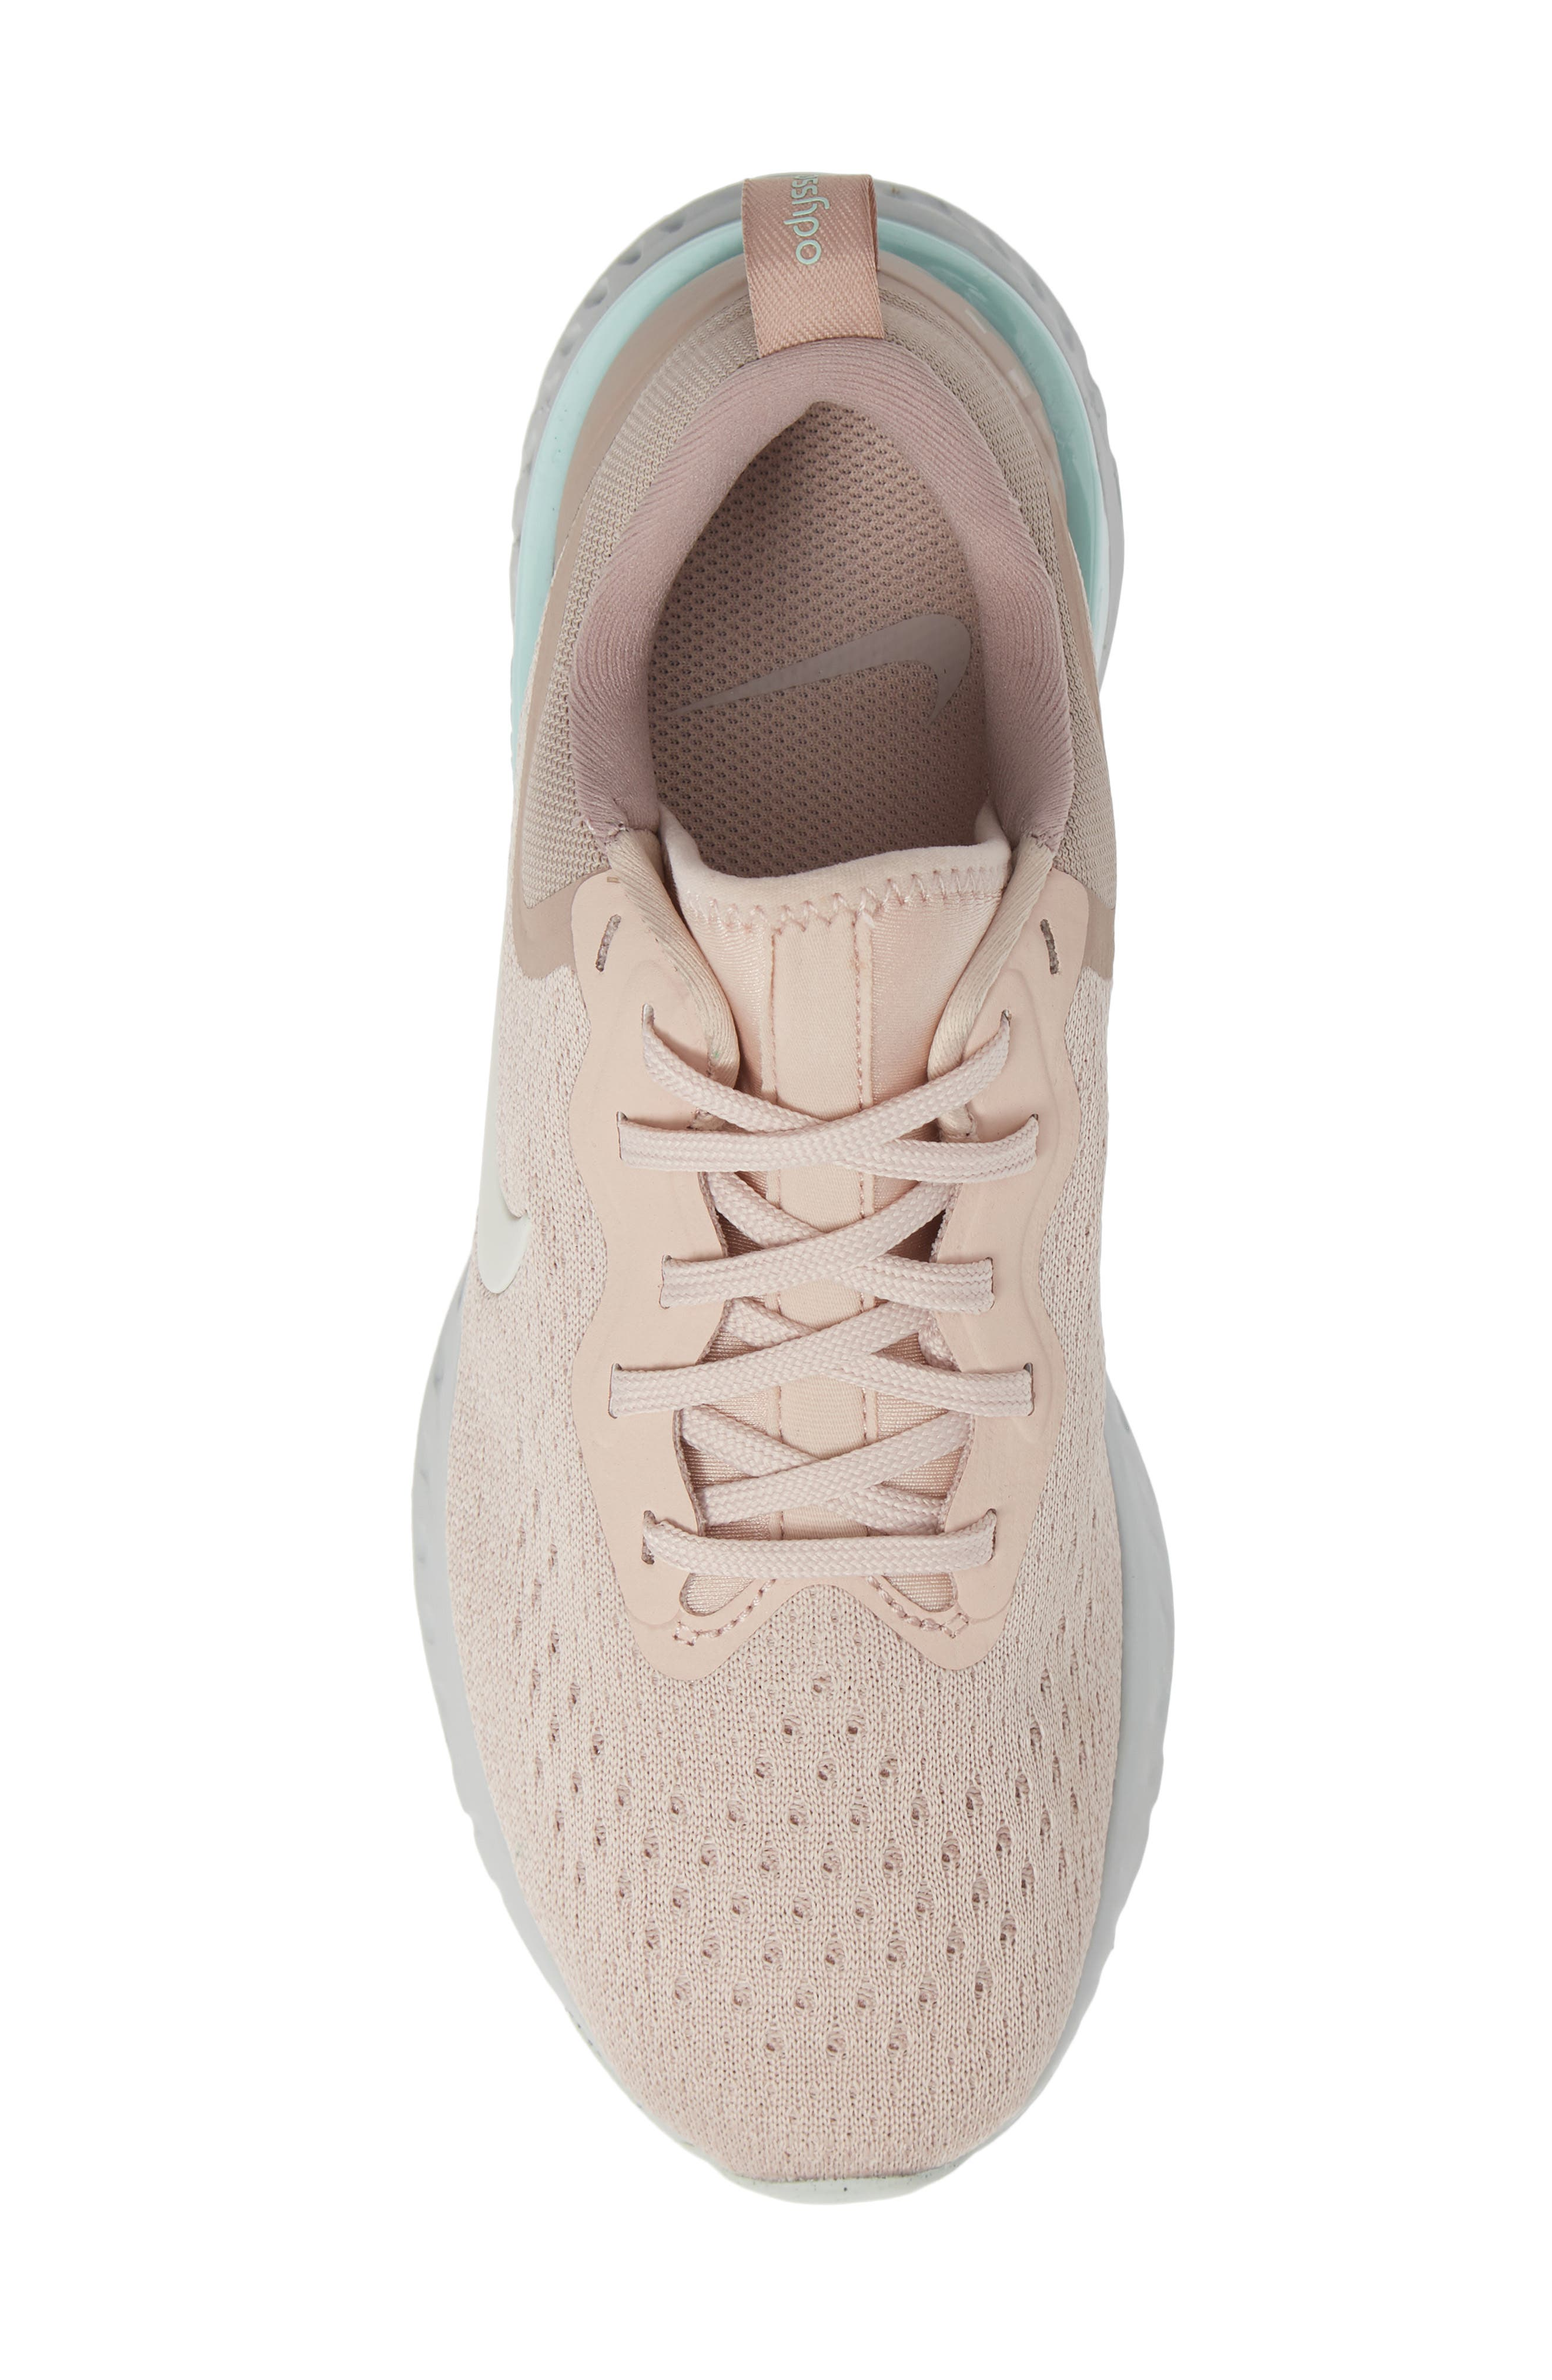 Odyssey React Running Shoe,                             Alternate thumbnail 5, color,                             BEIGE/ PHANTOM-DIFFUSED TAUPE